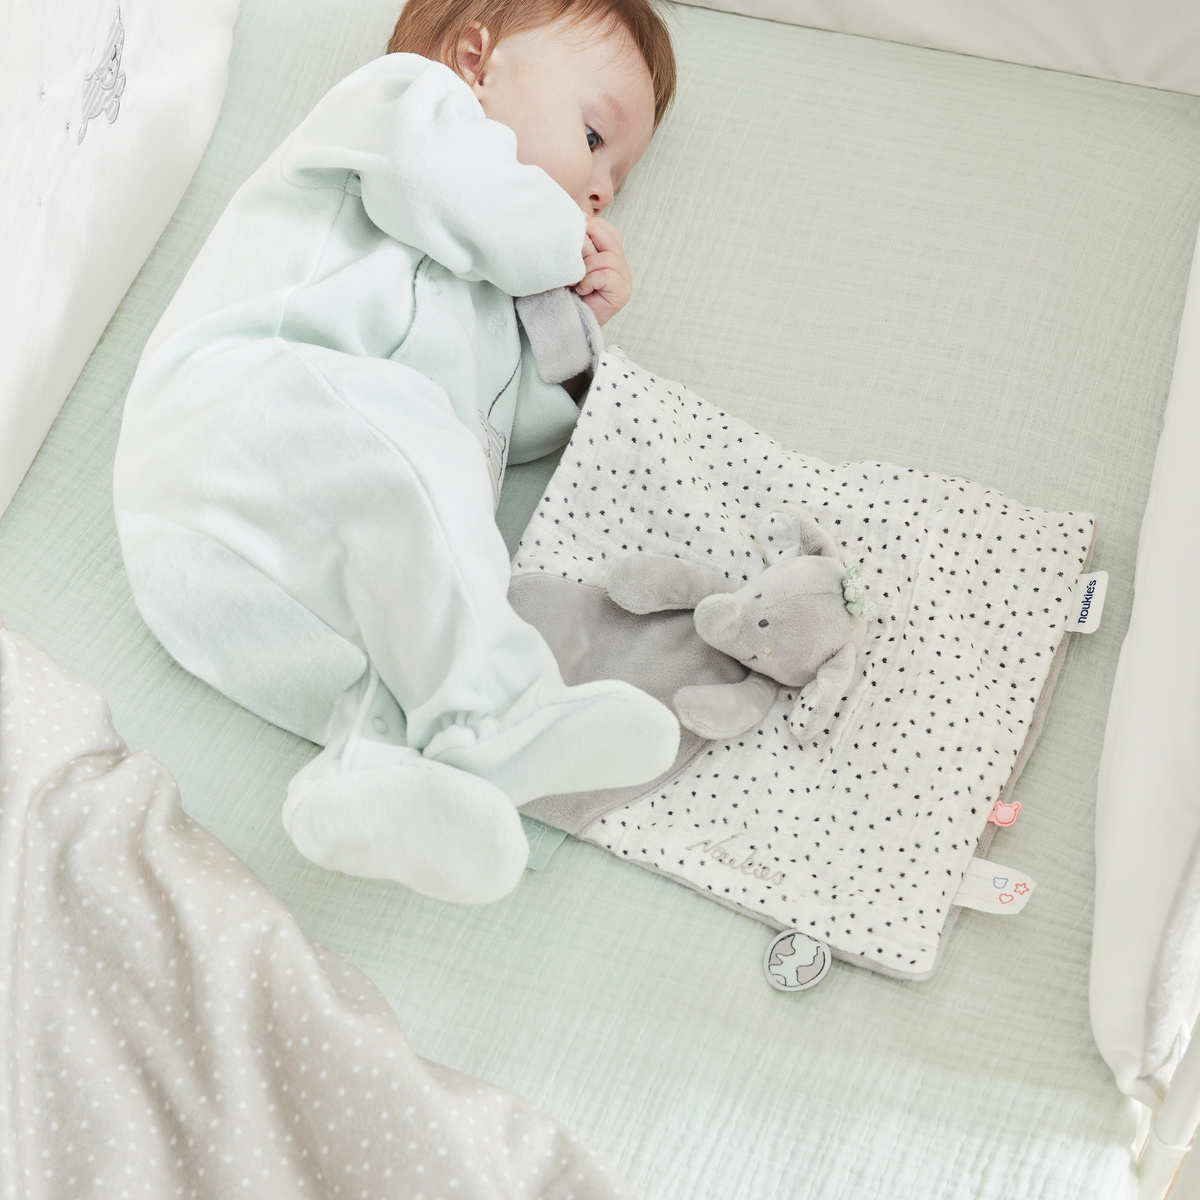 Anna safety blanket from the Anna & Milo collection